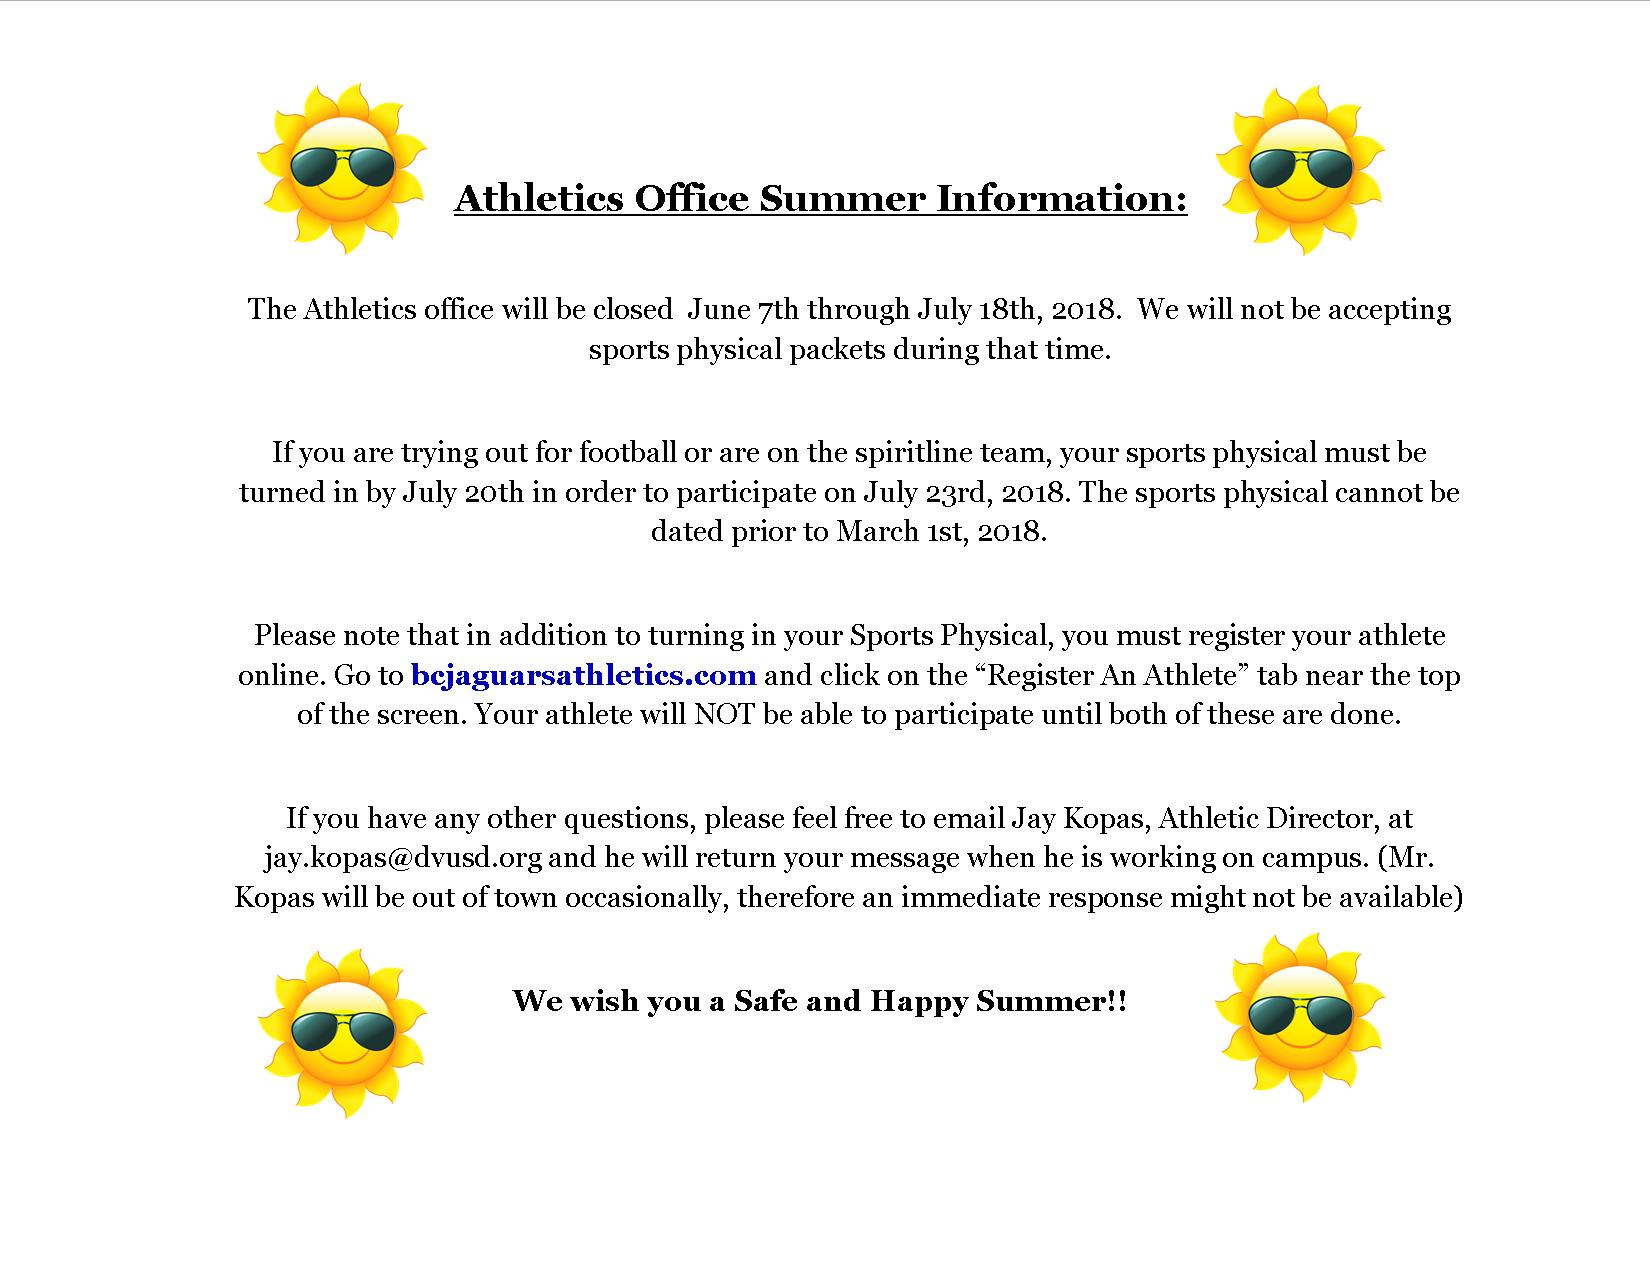 Athletics Office Summer Information